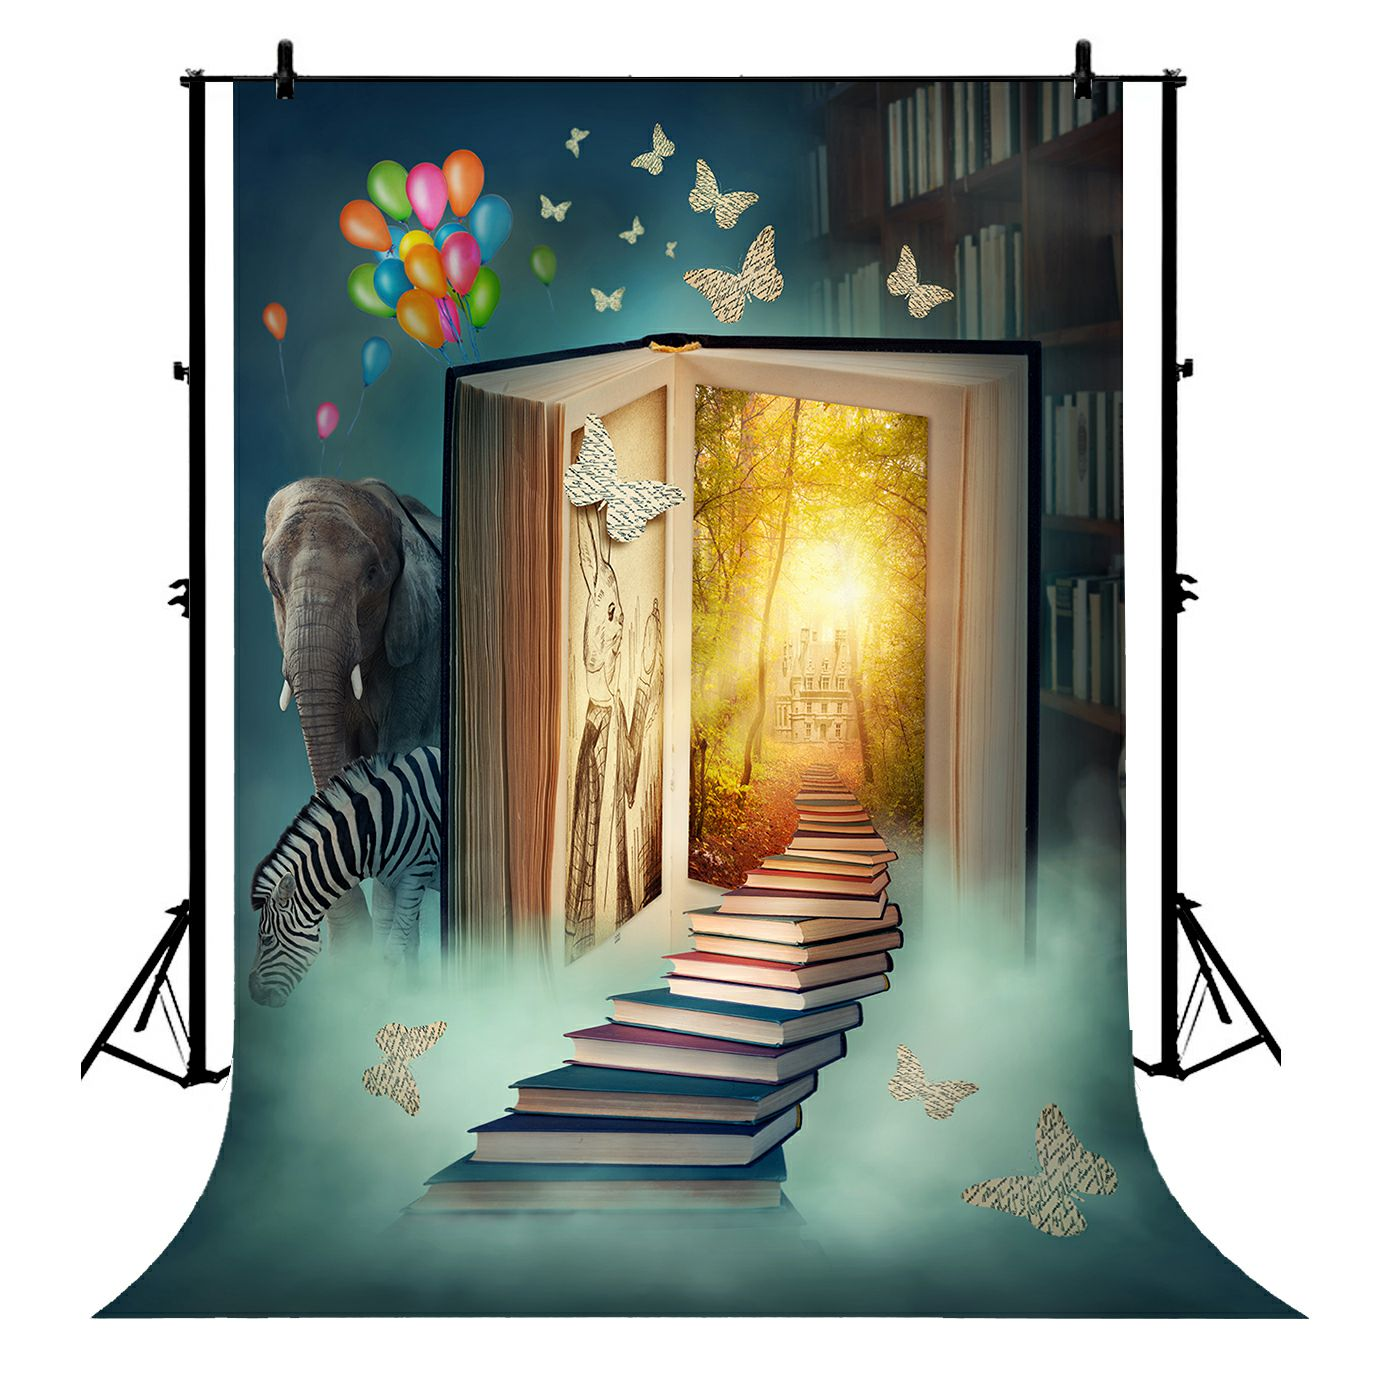 GCKG 7x5ft Book Fairy Tale World Animal Dream Newborn Polyester Photography Backdrop Photo Background Studio Props - image 4 of 4